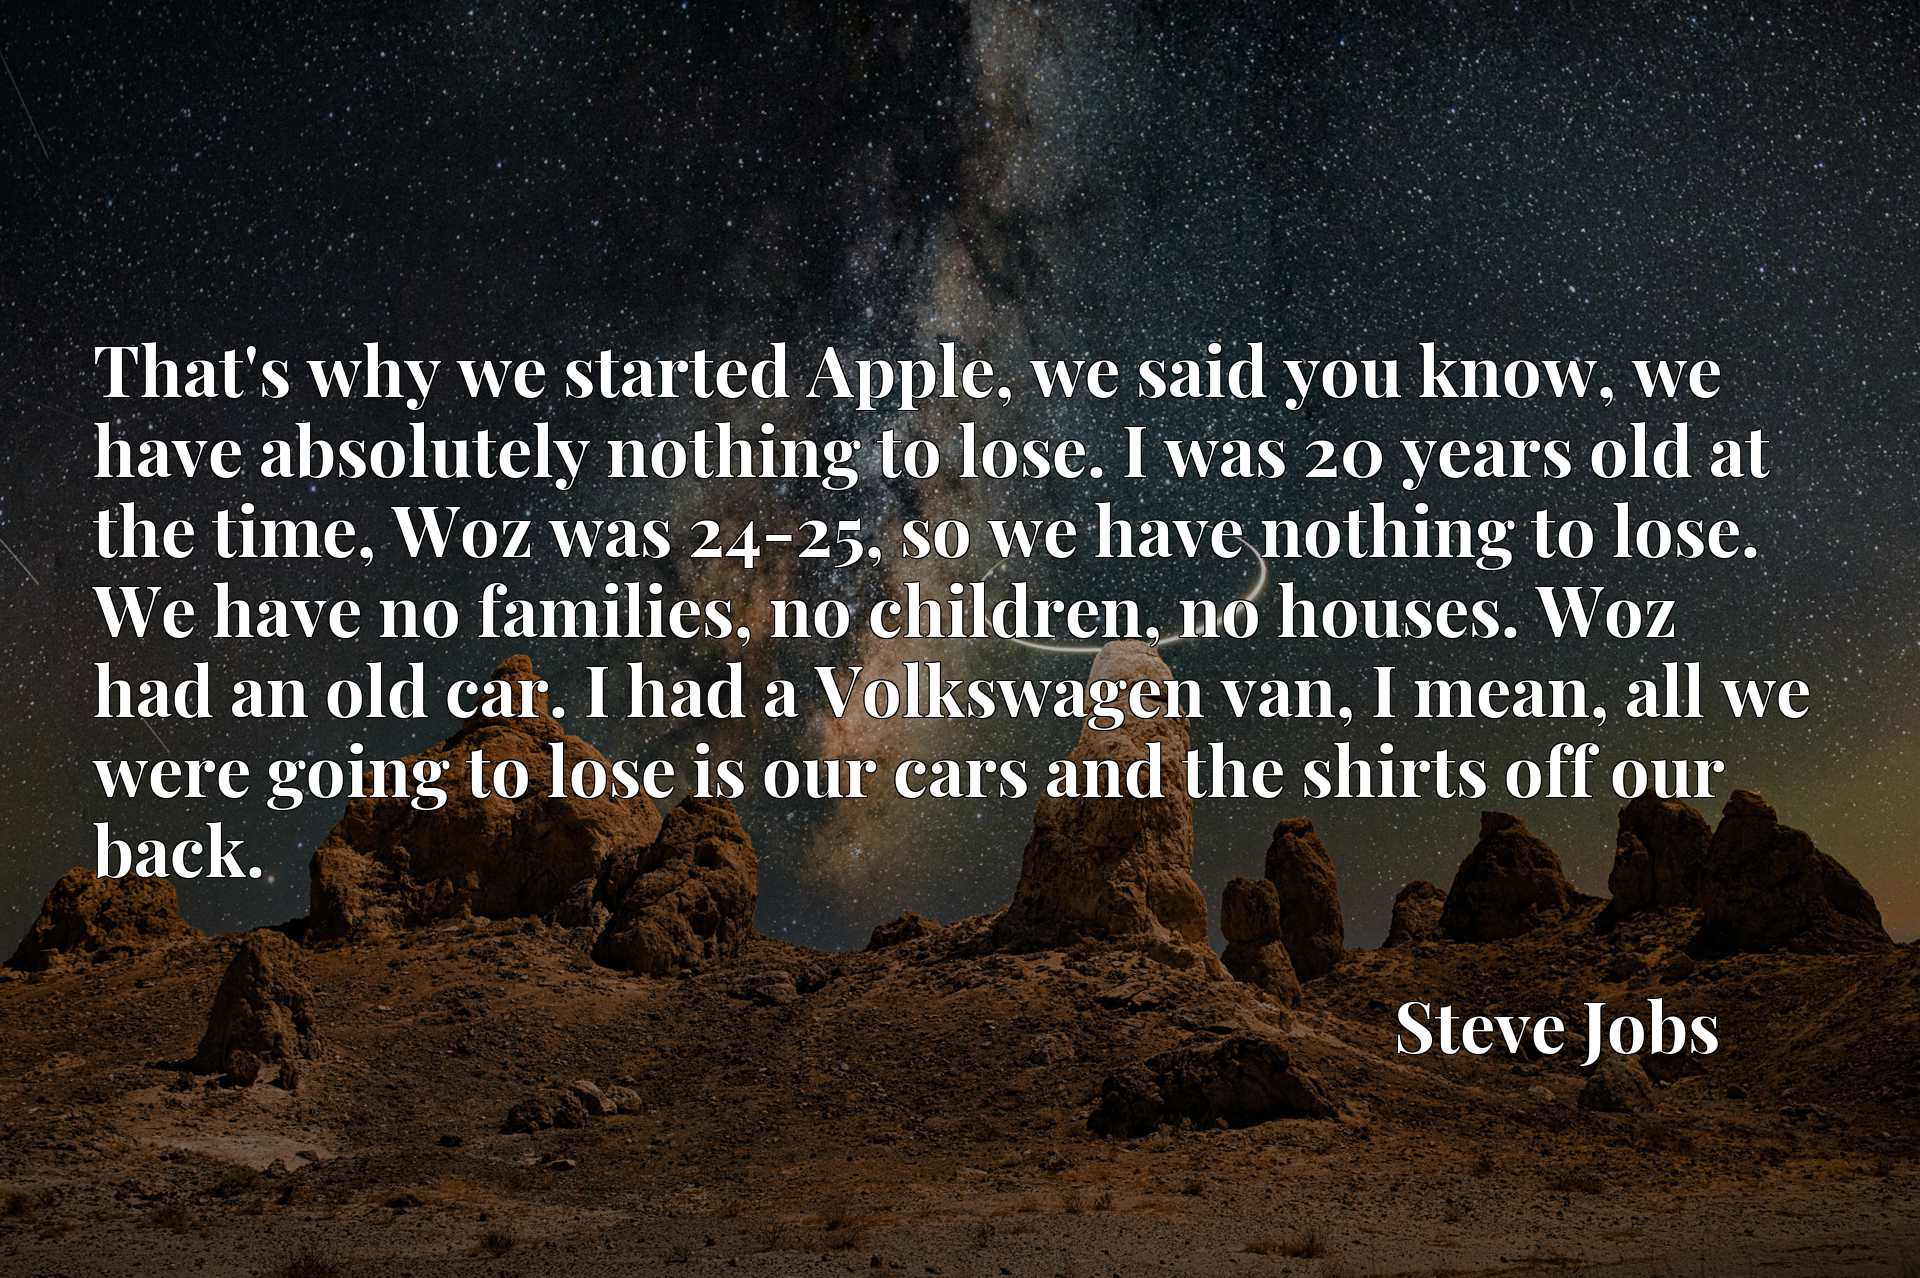 That's why we started Apple, we said you know, we have absolutely nothing to lose. I was 20 years old at the time, Woz was 24-25, so we have nothing to lose. We have no families, no children, no houses. Woz had an old car. I had a Volkswagen van, I mean, all we were going to lose is our cars and the shirts off our back.